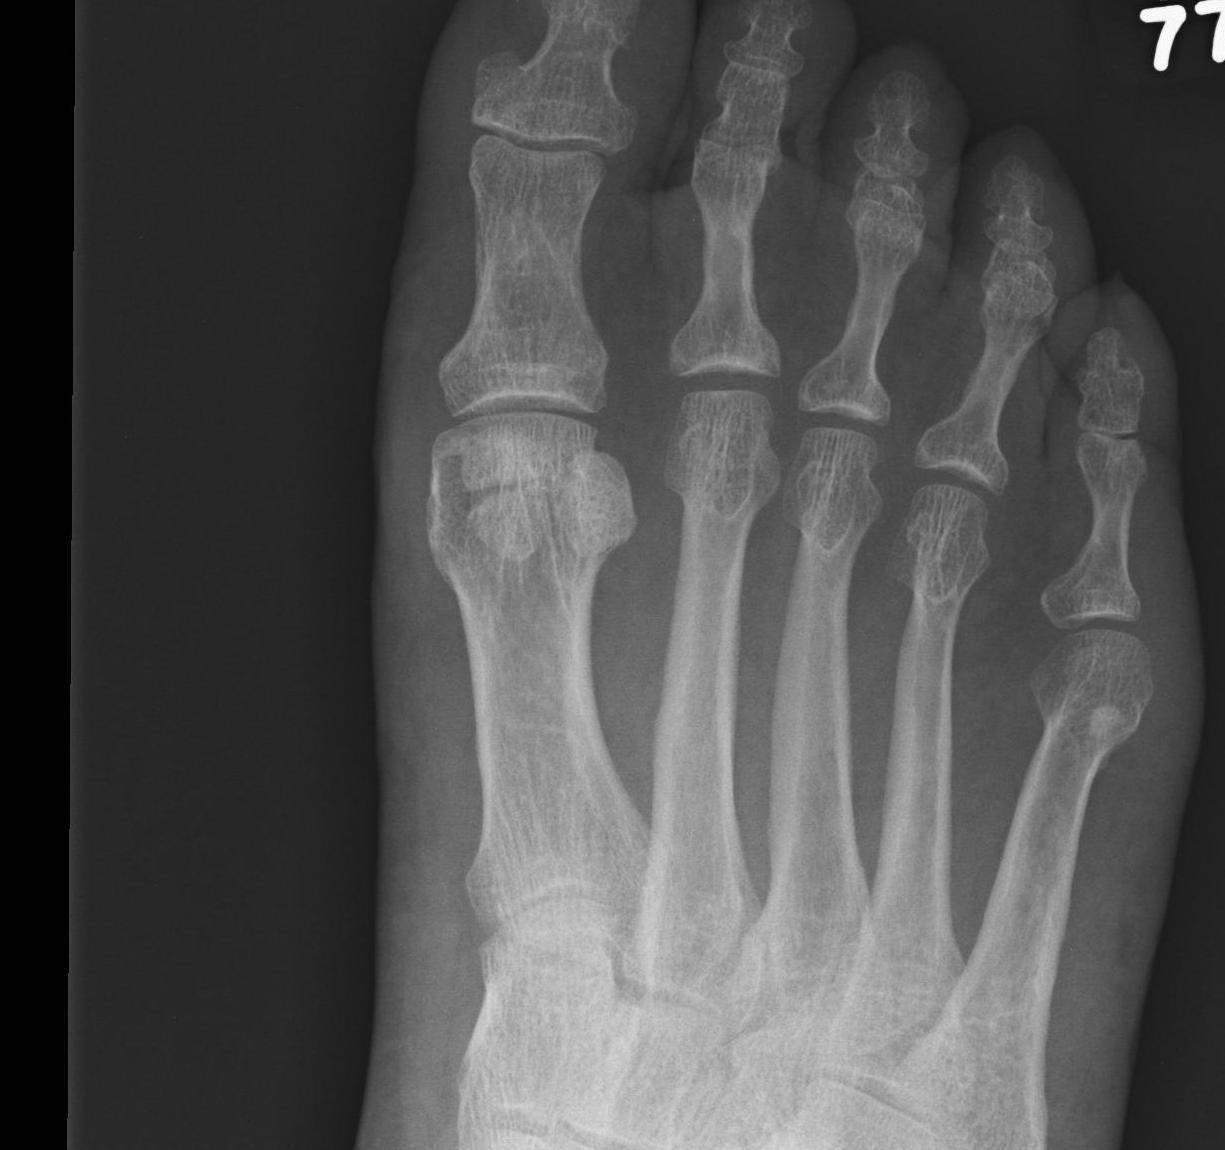 Bipartite Sesamoid